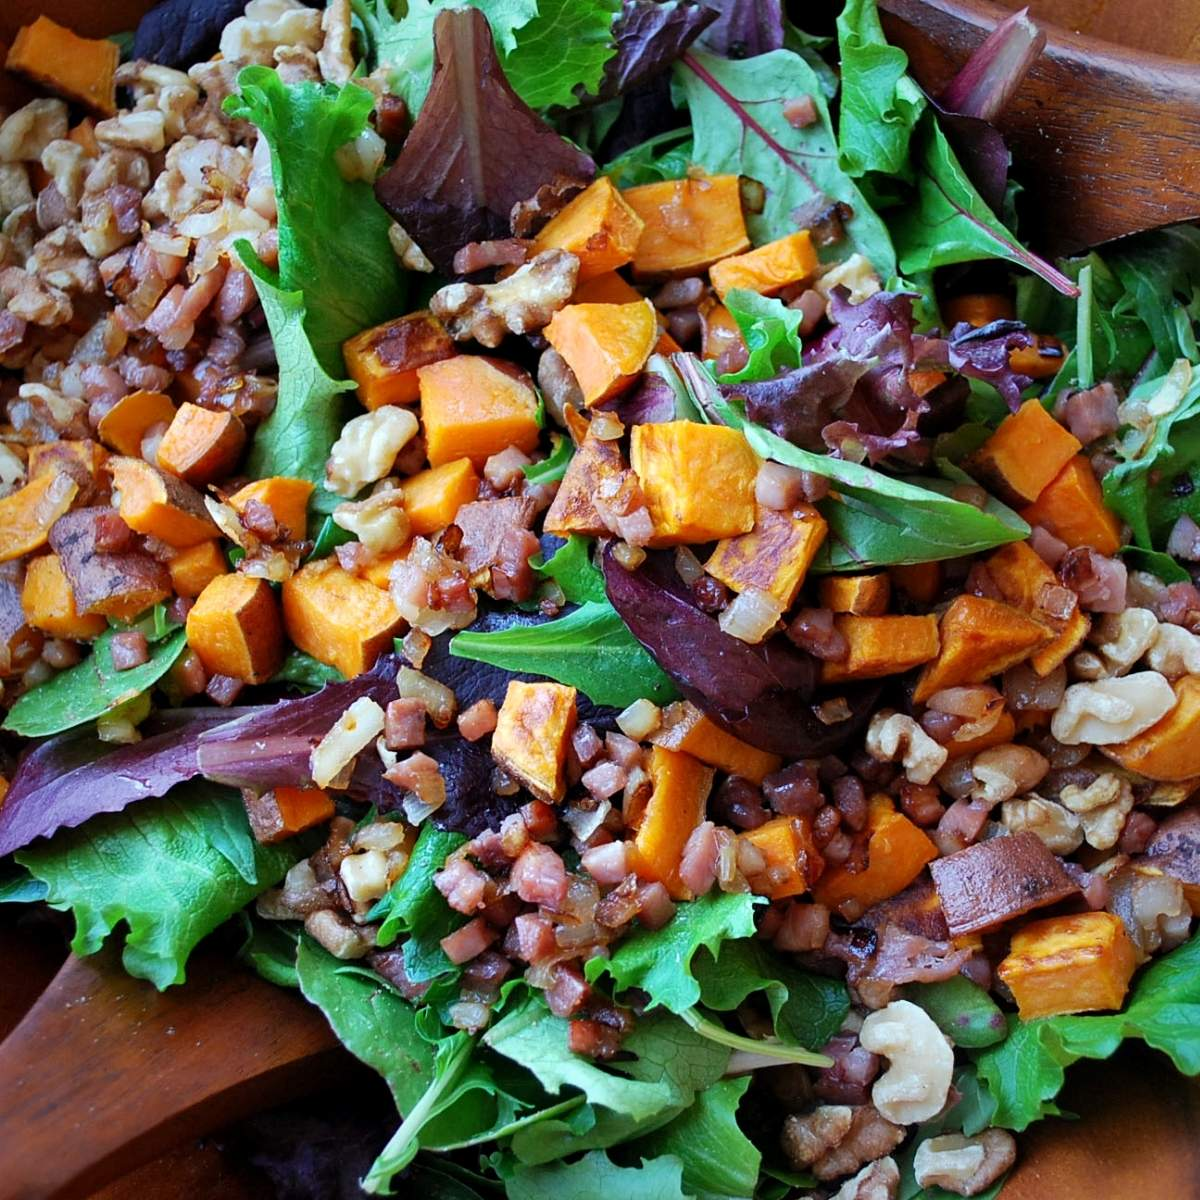 This delicious roasted sweet potato salad is the perfect combination of flavor and texture with toasted walnuts, goat cheese and a tangy balsamic dressing. via @Ameessavorydish